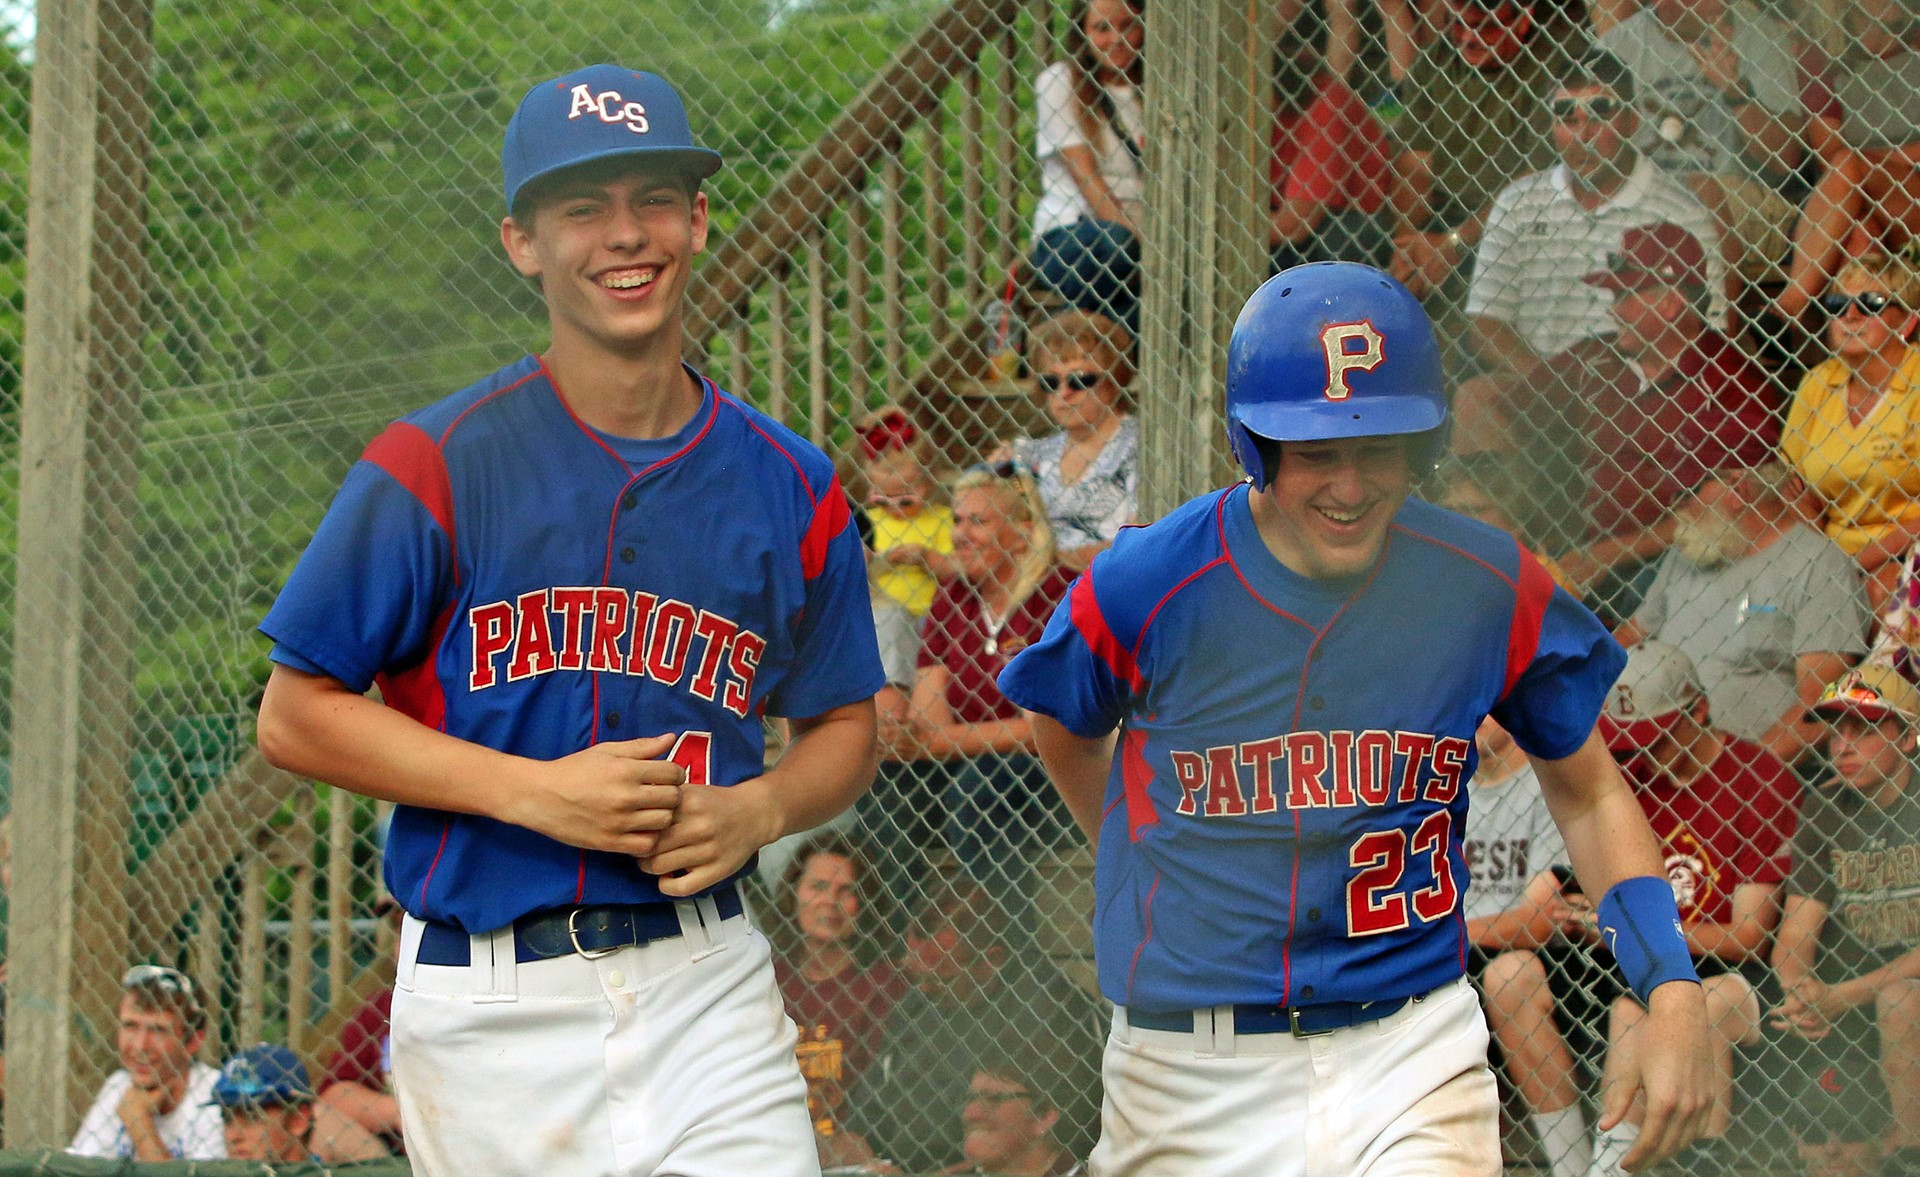 Drew Meador and Marcus Carter all smiles after home run by Carter.